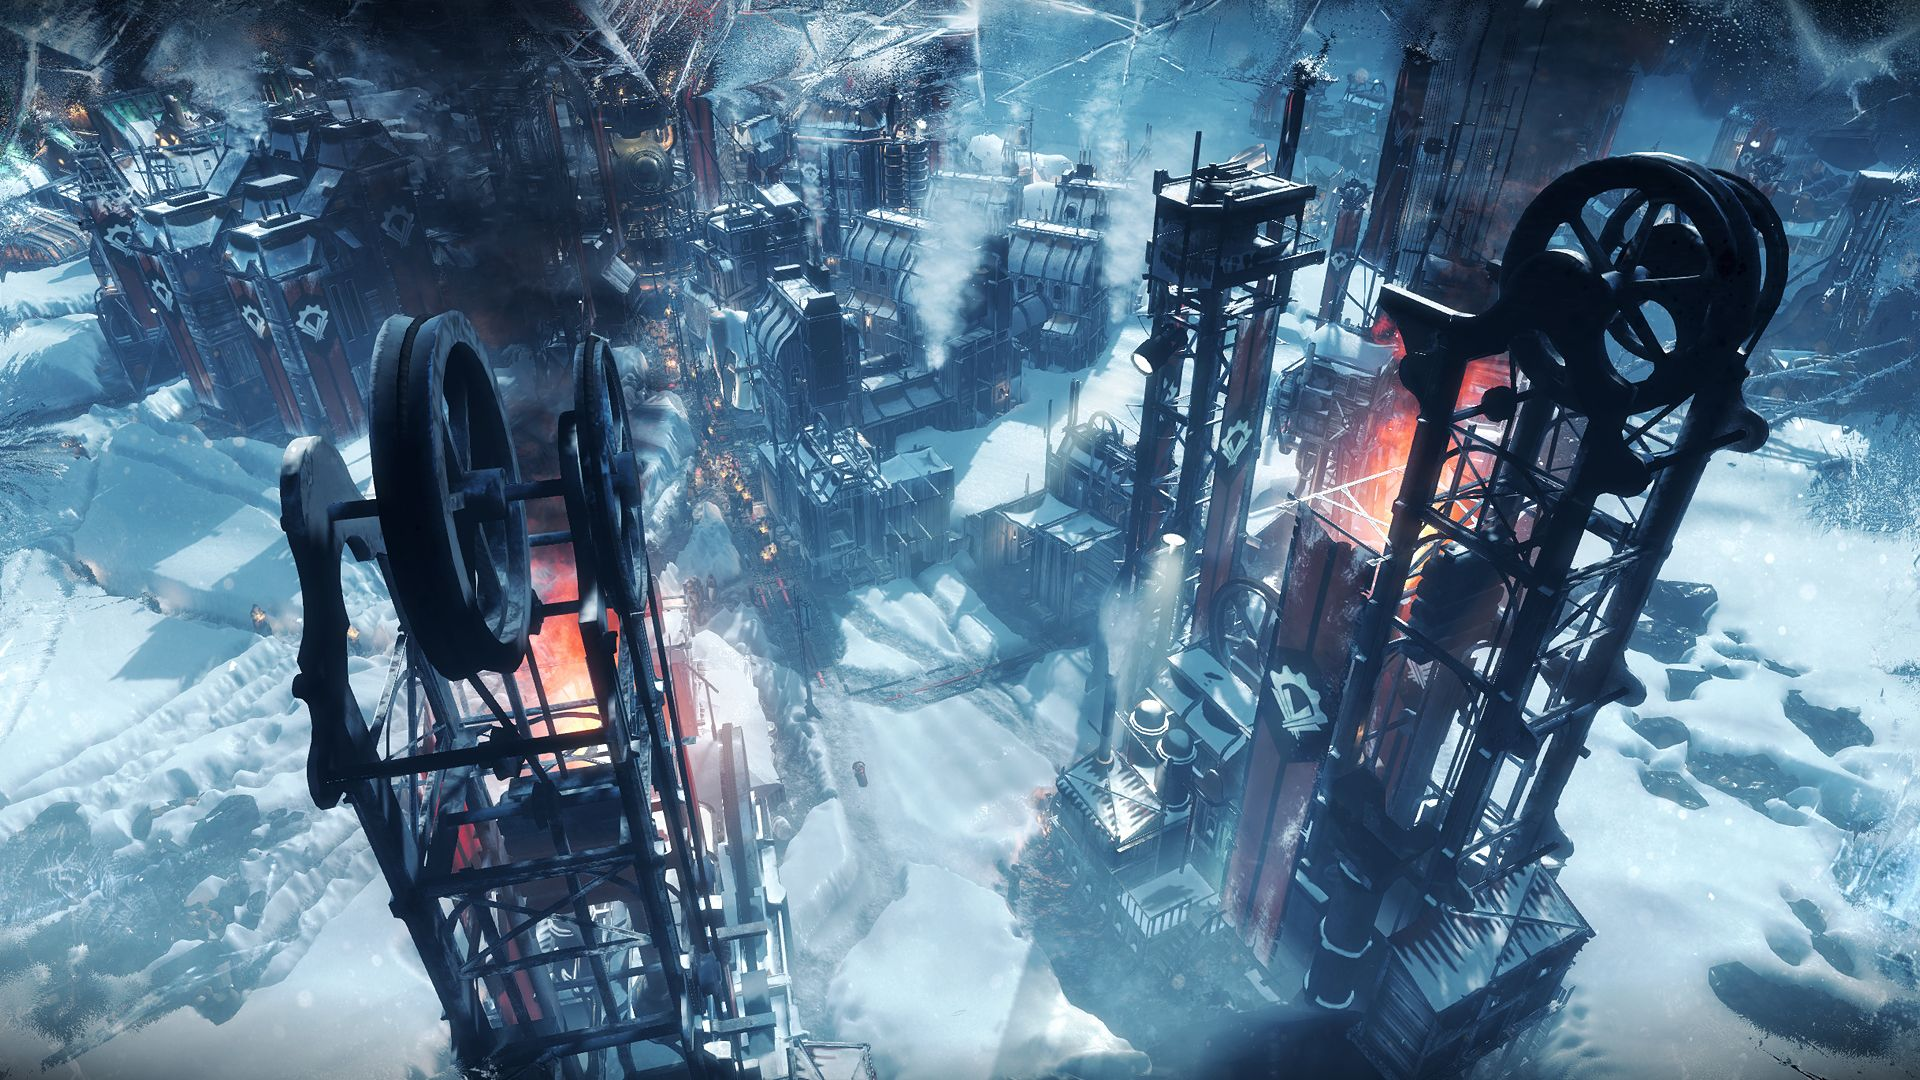 Frostpunk A New Game By The Creators Of This War Of Mine Frostpunk Is A New Game Developed And To Be Published Survival Games Playstation Post Apocalypse